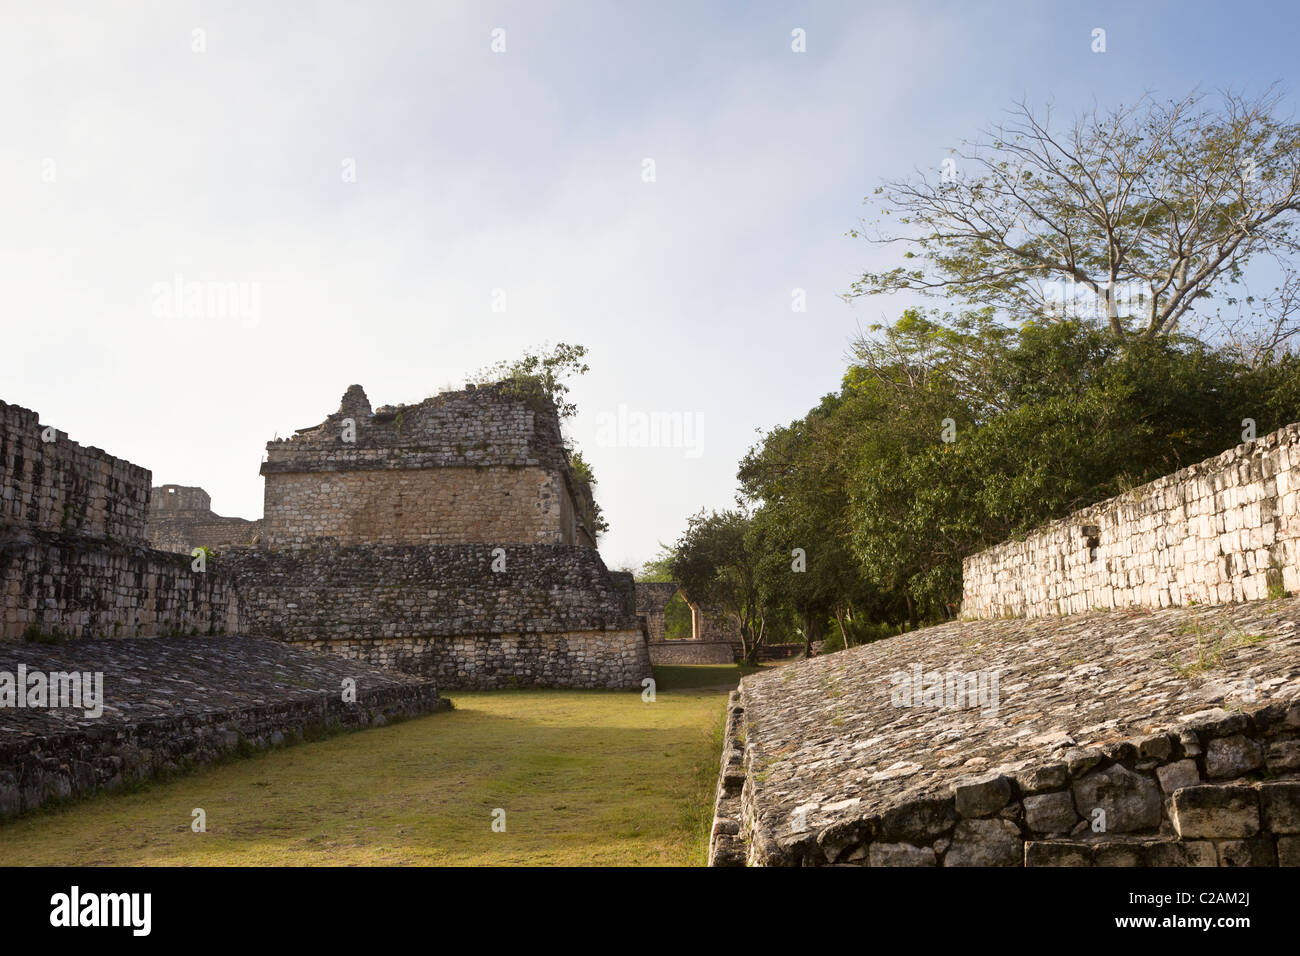 Ballcourt at the Maya ruins of Ek Balam in the Yucatan Peninsula, Mexico. - Stock Image